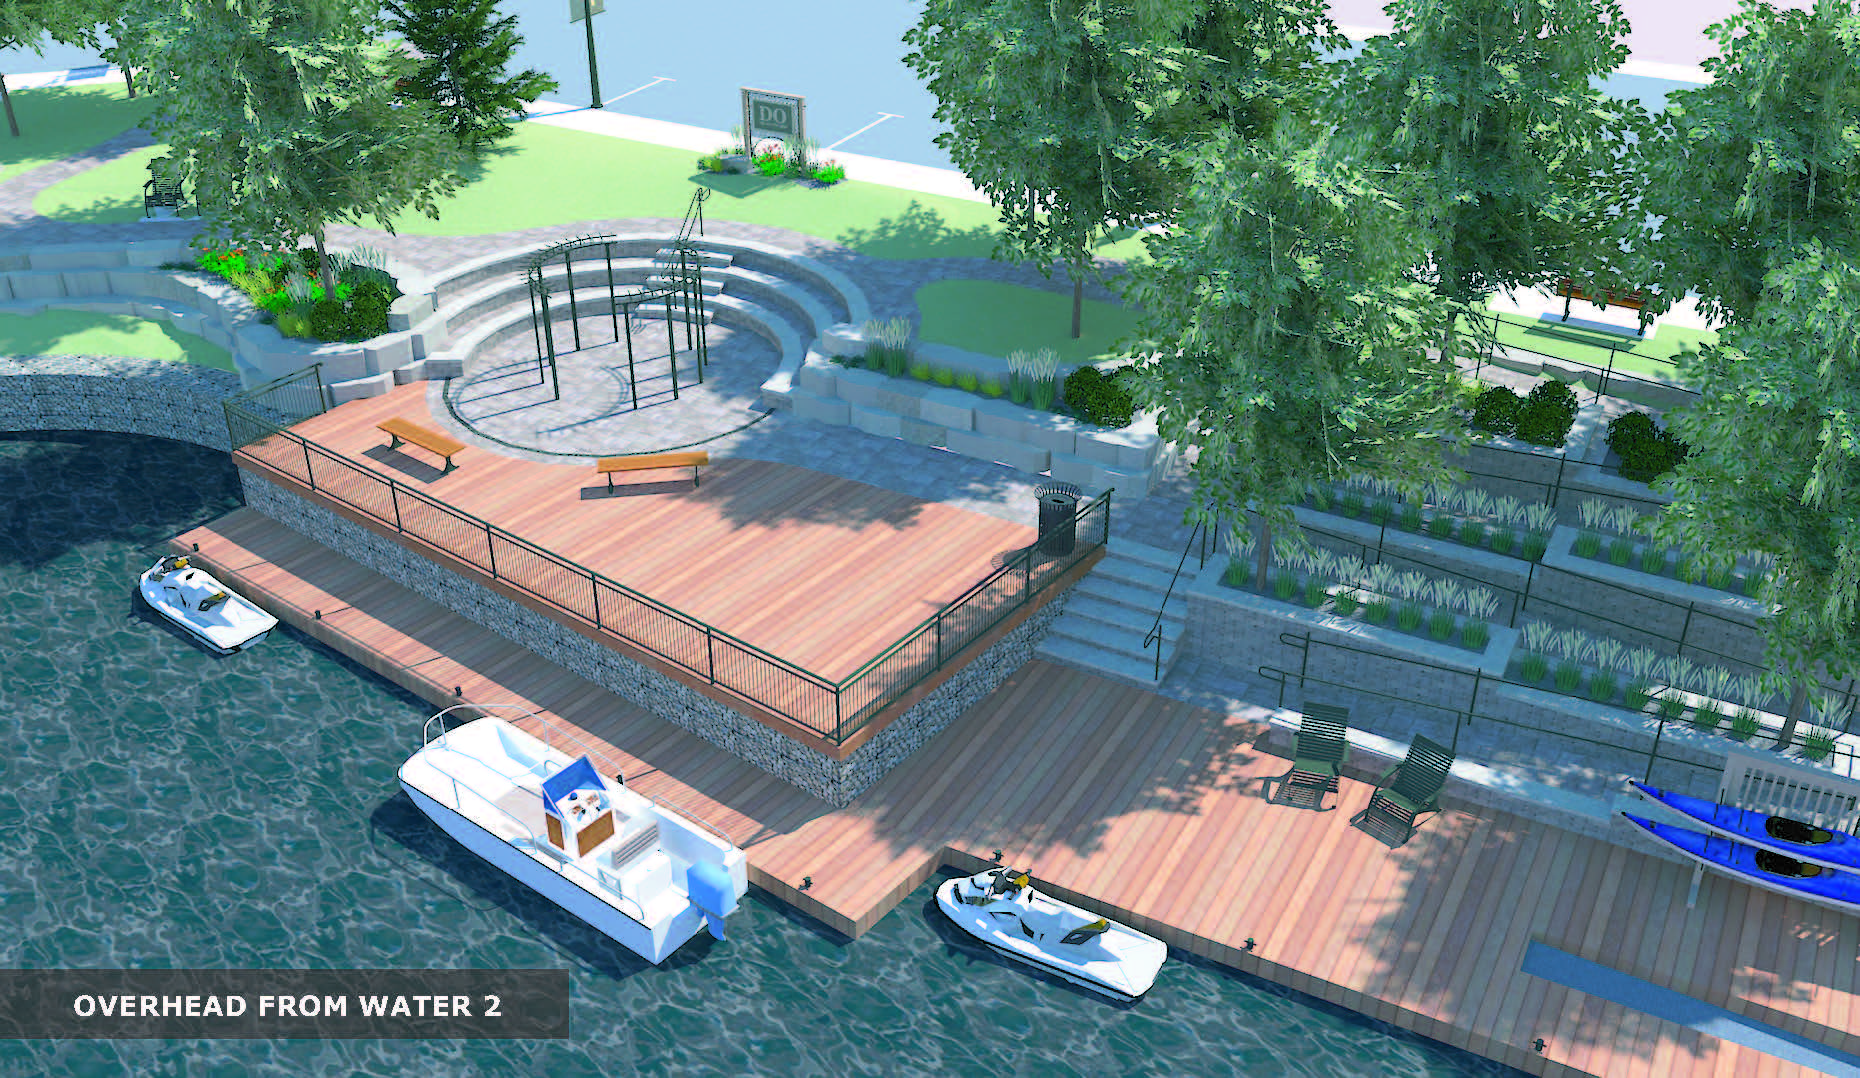 WATERFRONT PARK CONCEPT 2